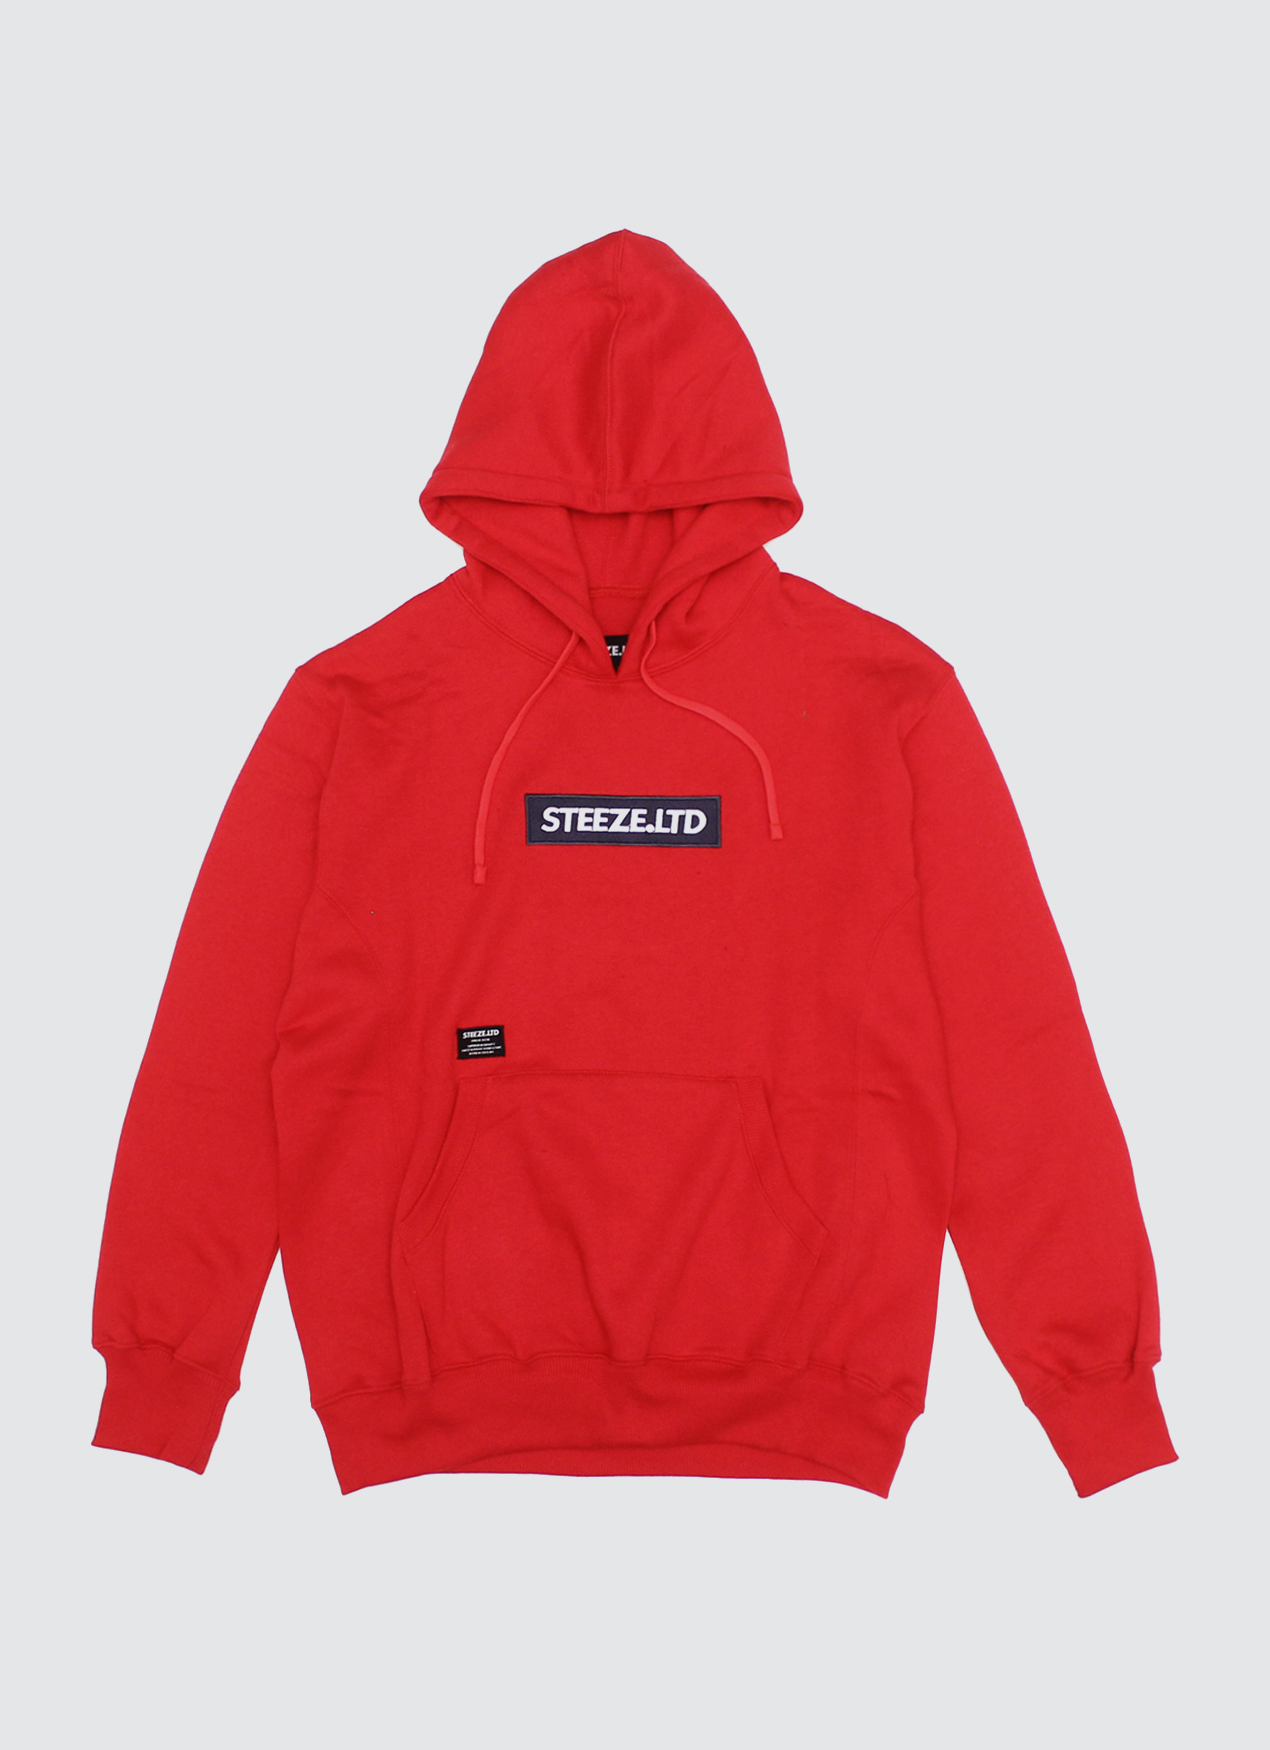 4c012f52 Buy Original Steeze.Ltd Red Authentic Logo Pullover Hoodie at ...